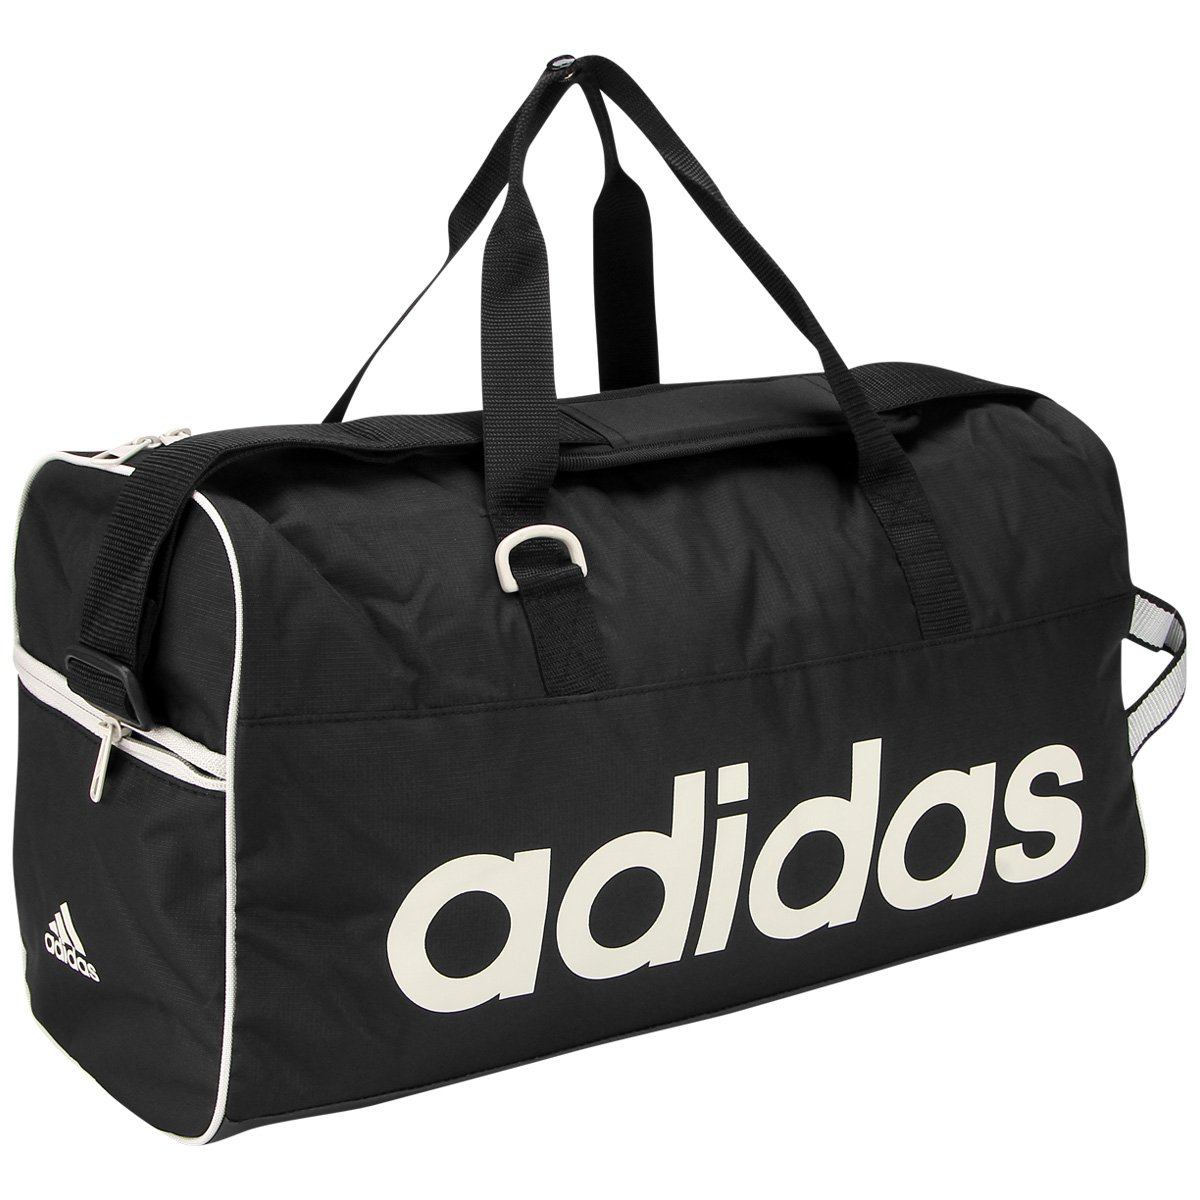 5952cd891 Mala Adidas Essentials Linear - Compre Agora | Zattini